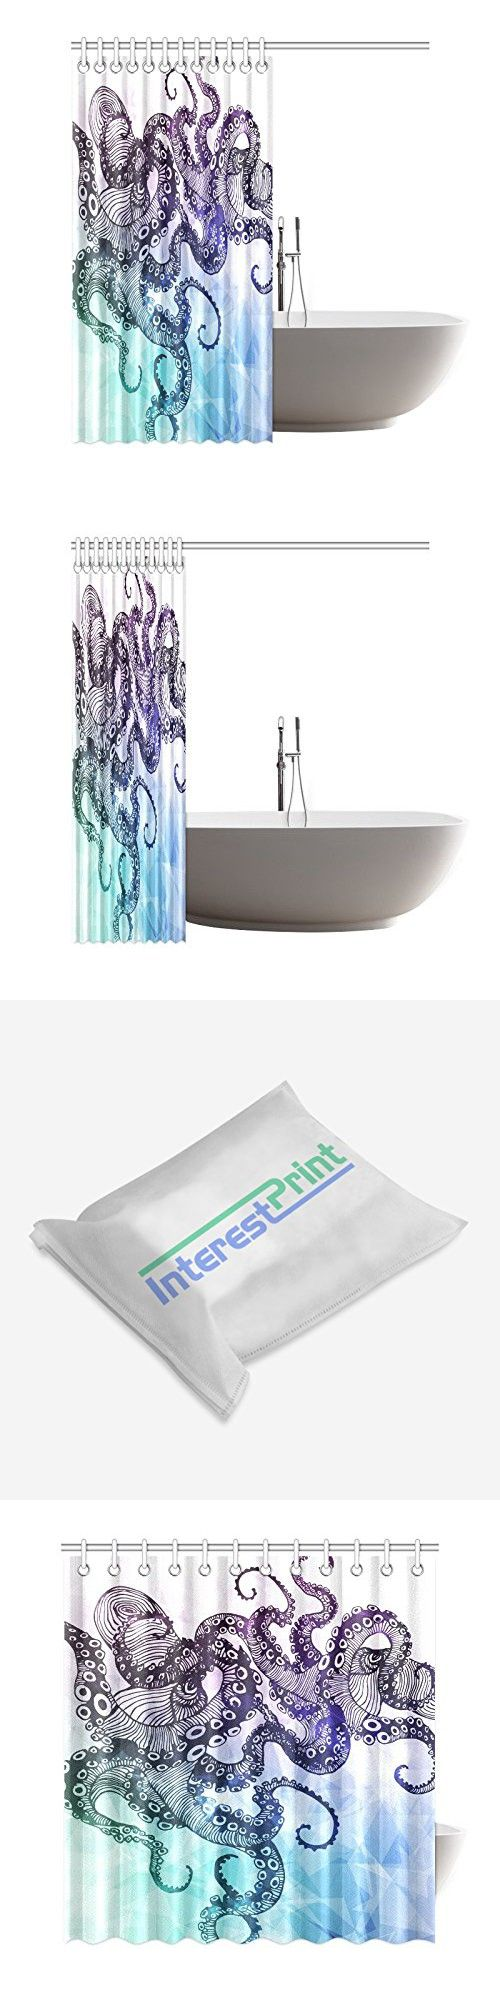 InterestPrint Hipster Octopus Custom Shower Curtain 69 X 72 Inches Waterproof Polyester Fabric Bathroom Sets Home Decor